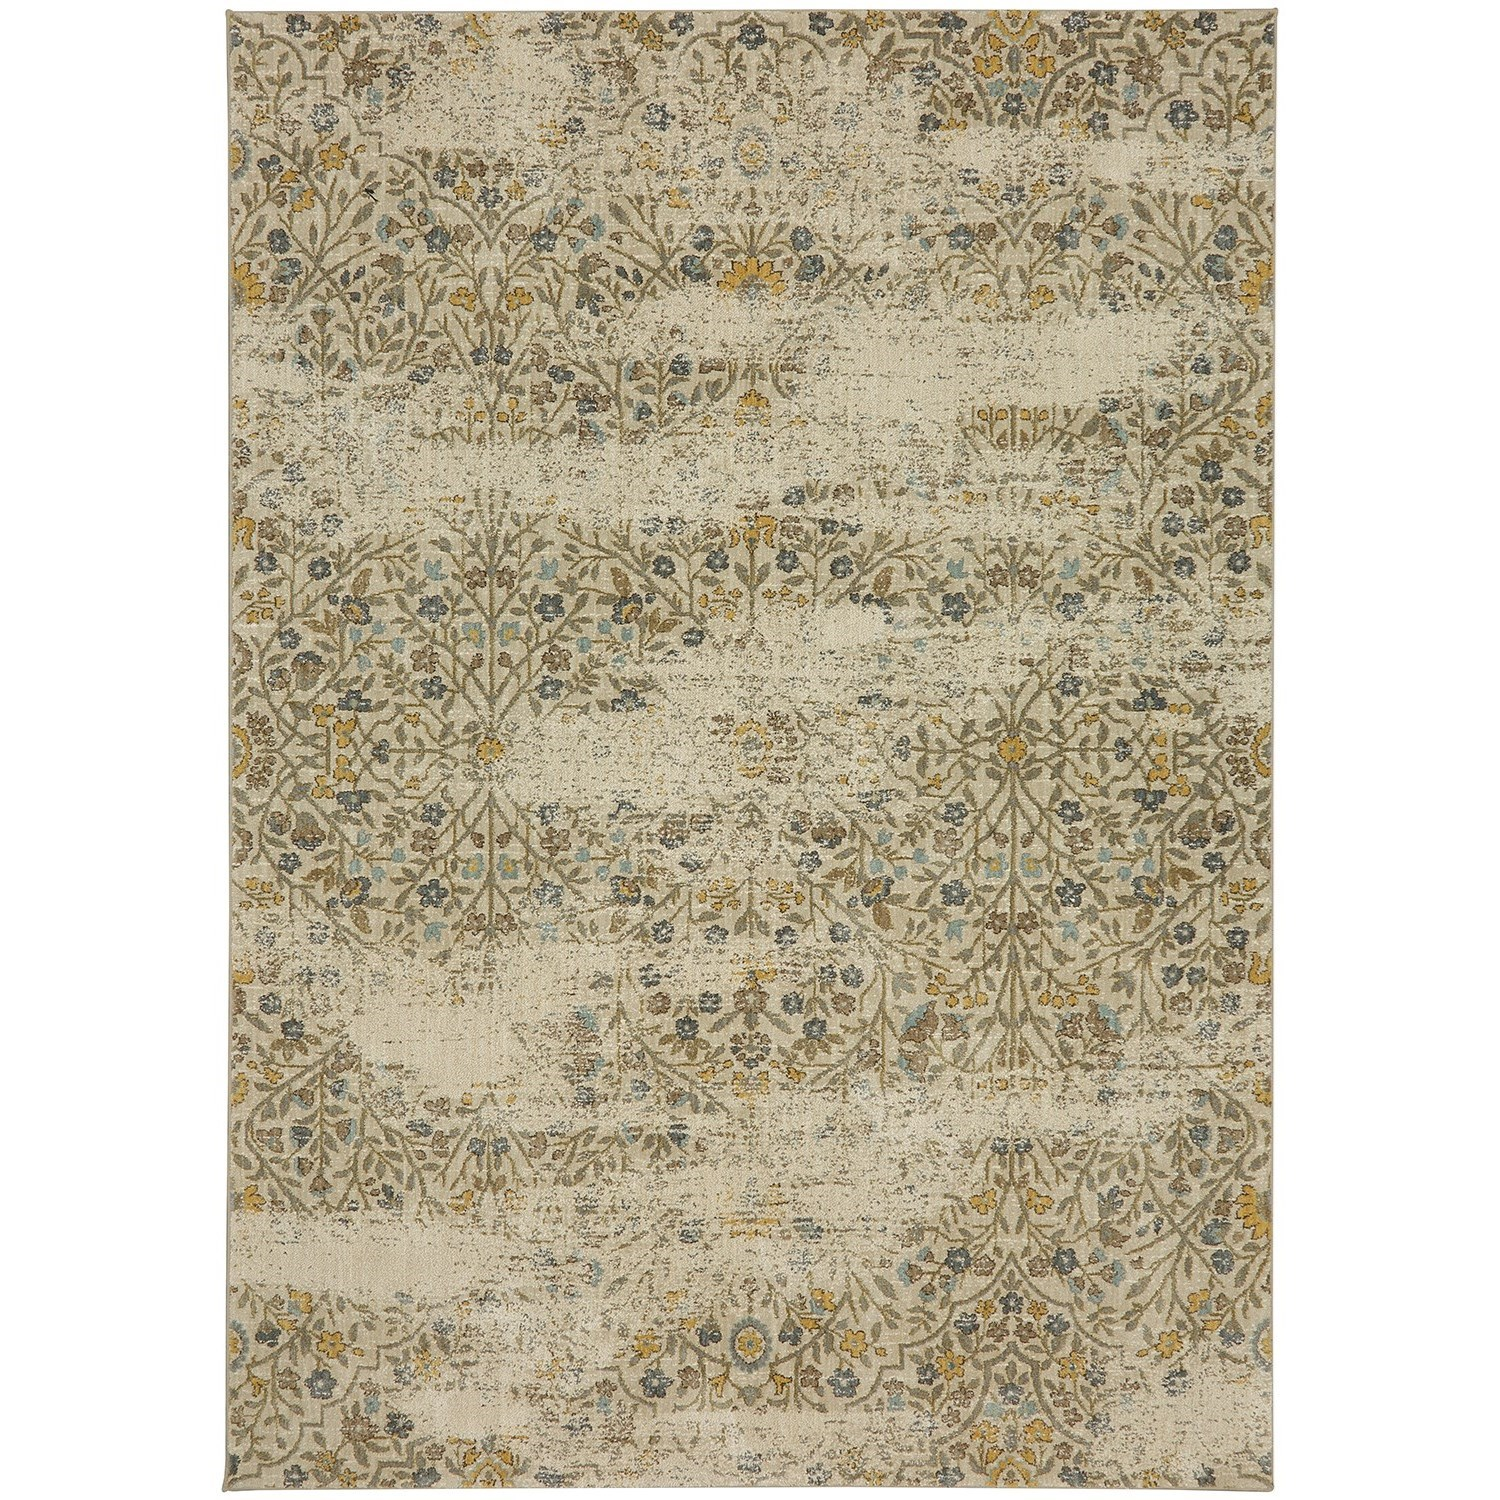 "9' 6""x12' 11"" Rectangle Floral Area Rug"